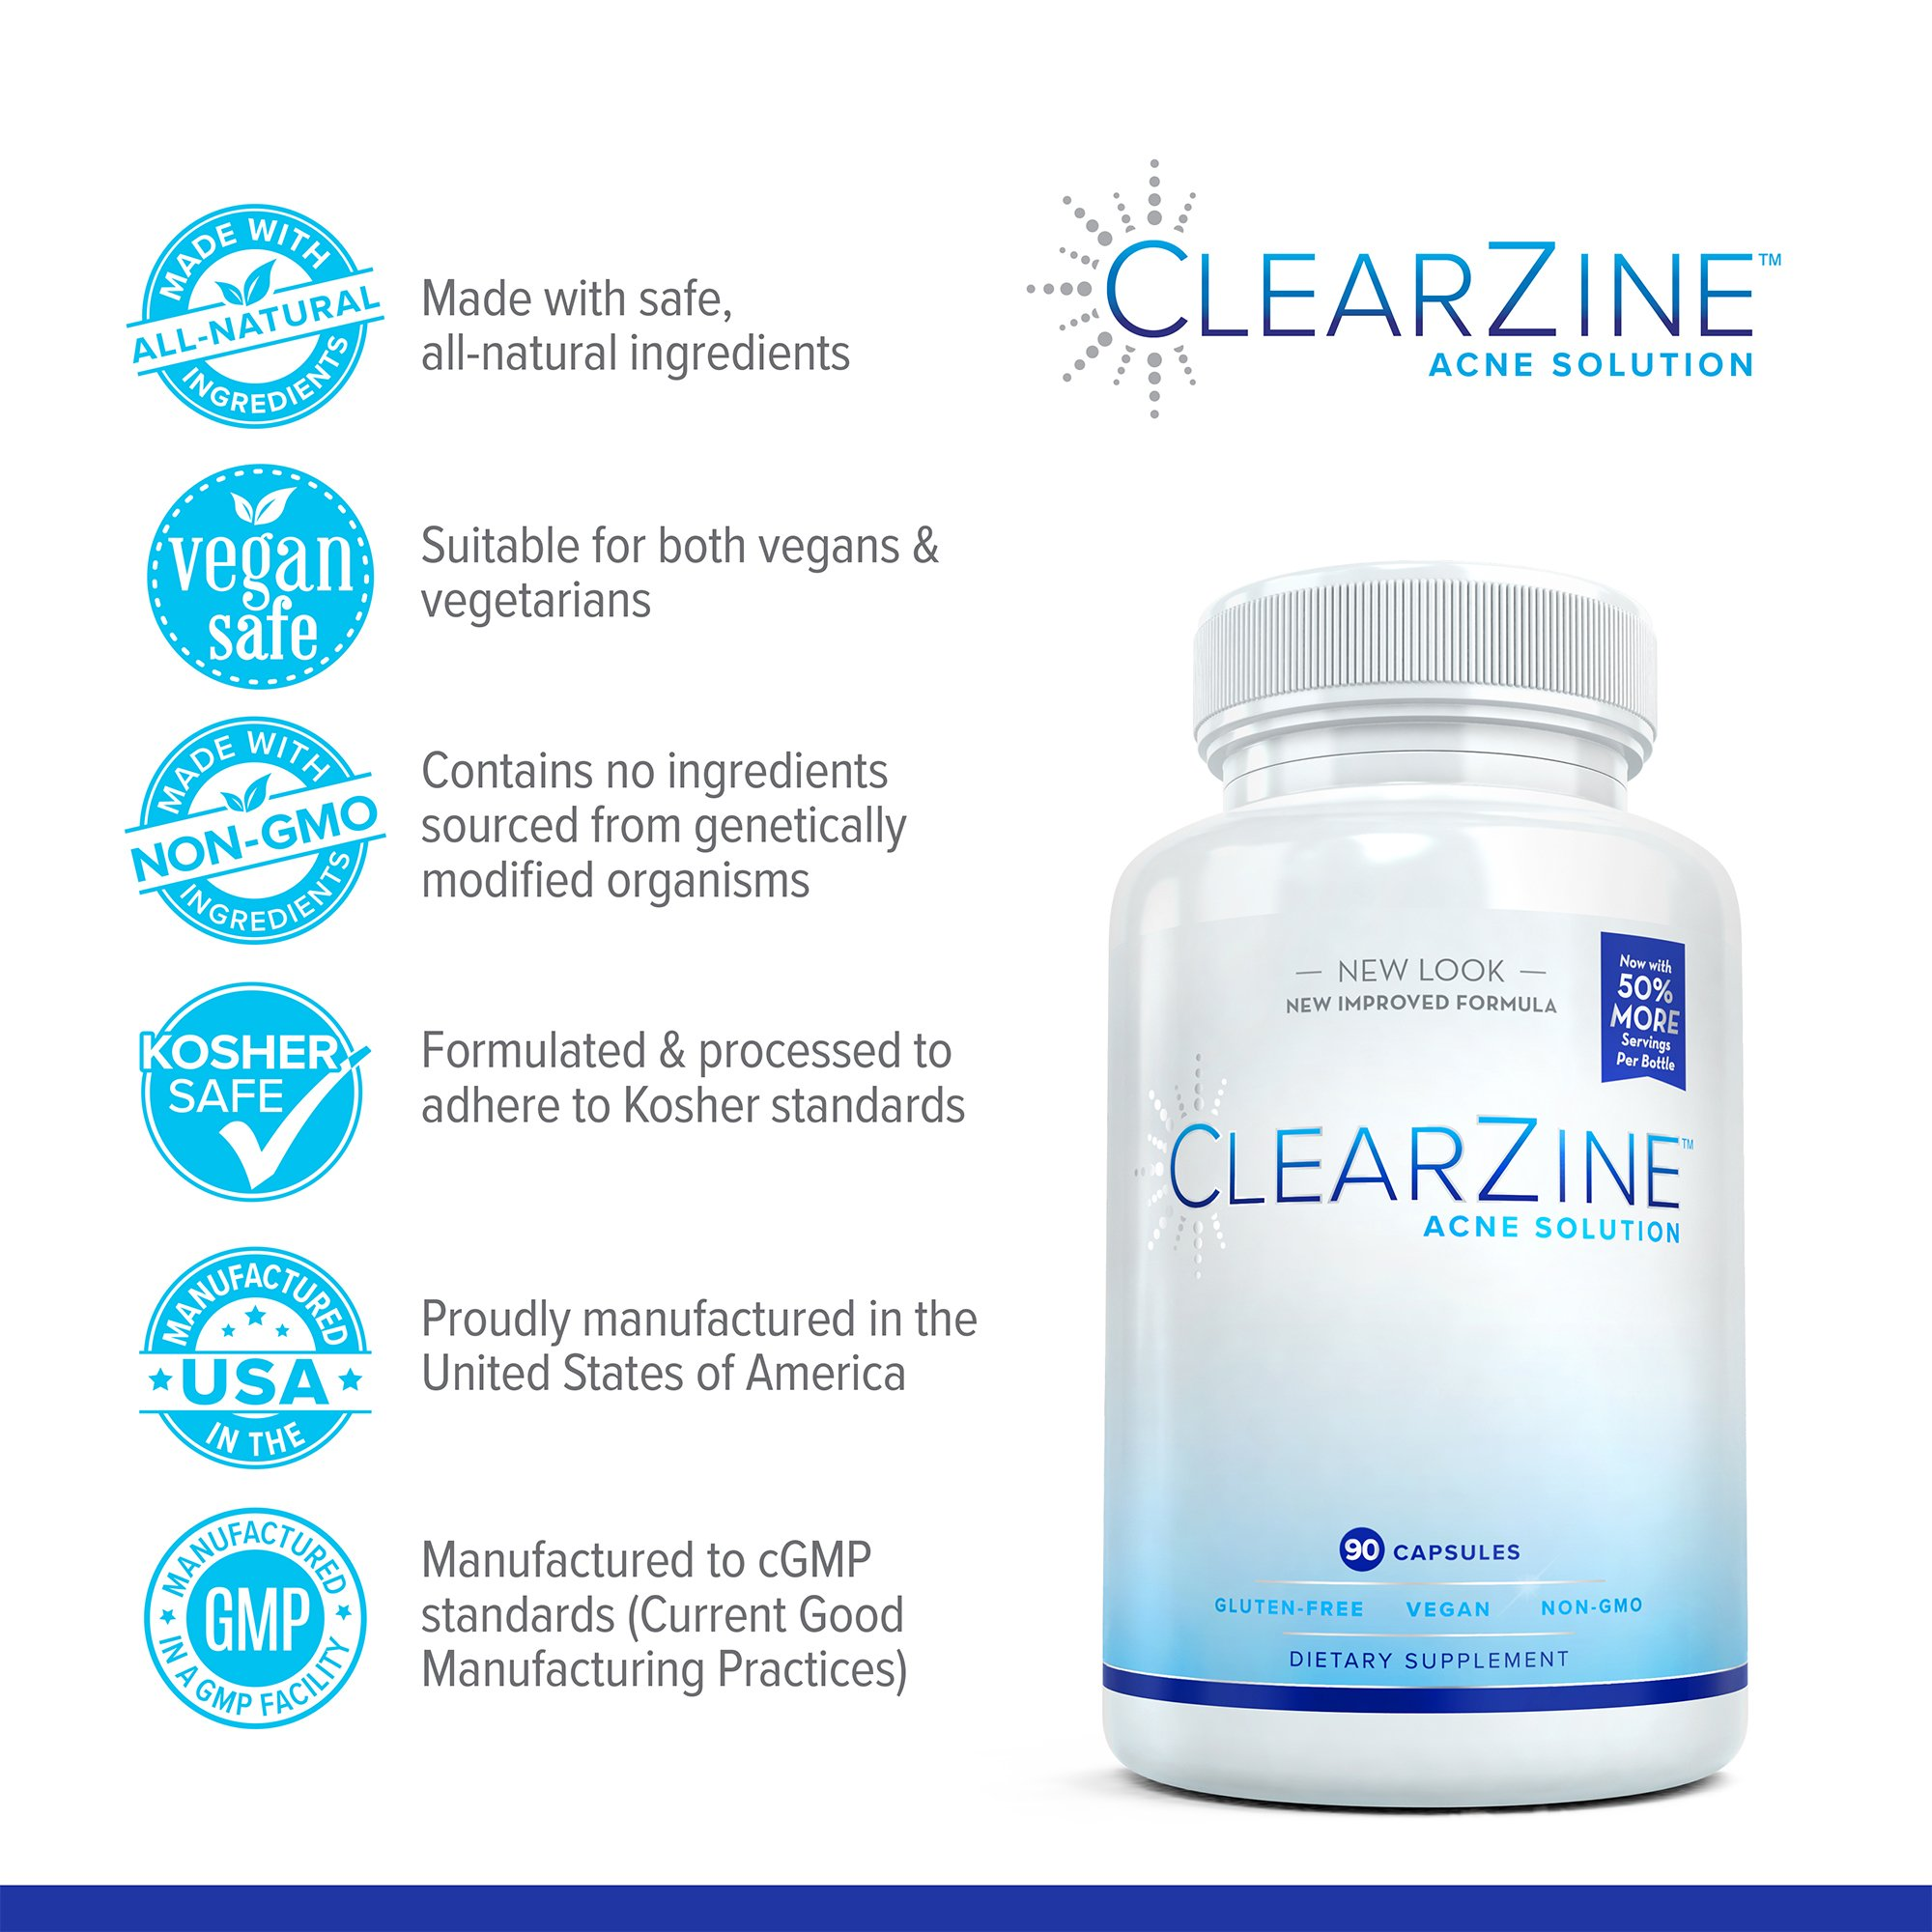 ClearZine Acne Pills for Teens & Adults   Clear Skin Supplement, Vitamins for Hormonal & Cystic Acne   Stop Breakouts, Oily Skin with Milk Thistle, Pantothenic Acid & Zinc, 2 Bottles, 90 Caps Each by ClearZine (Image #4)